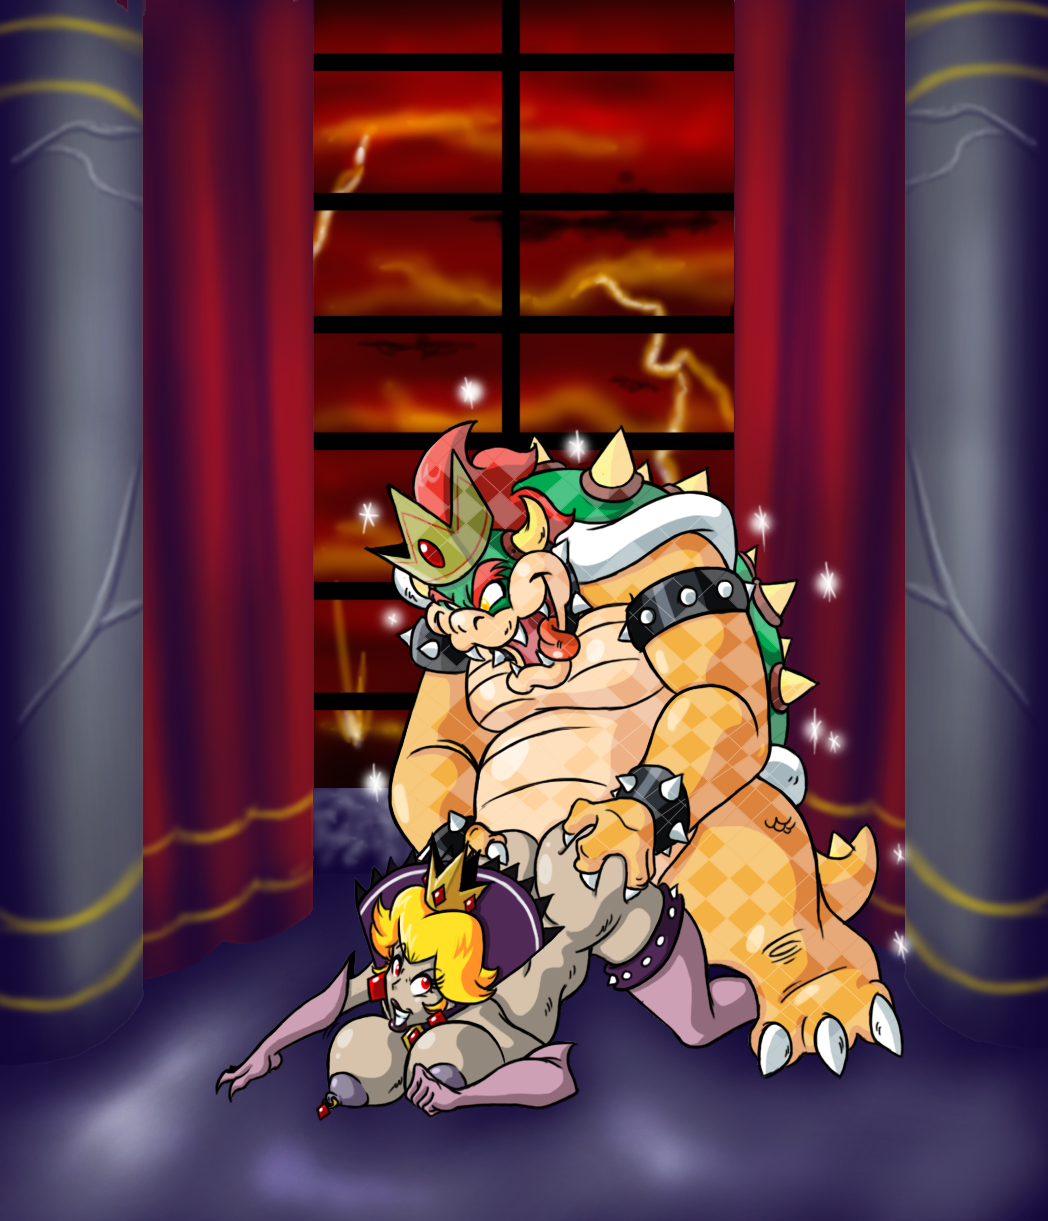 bed and in bowser peach Breath of the wild rubber outfit